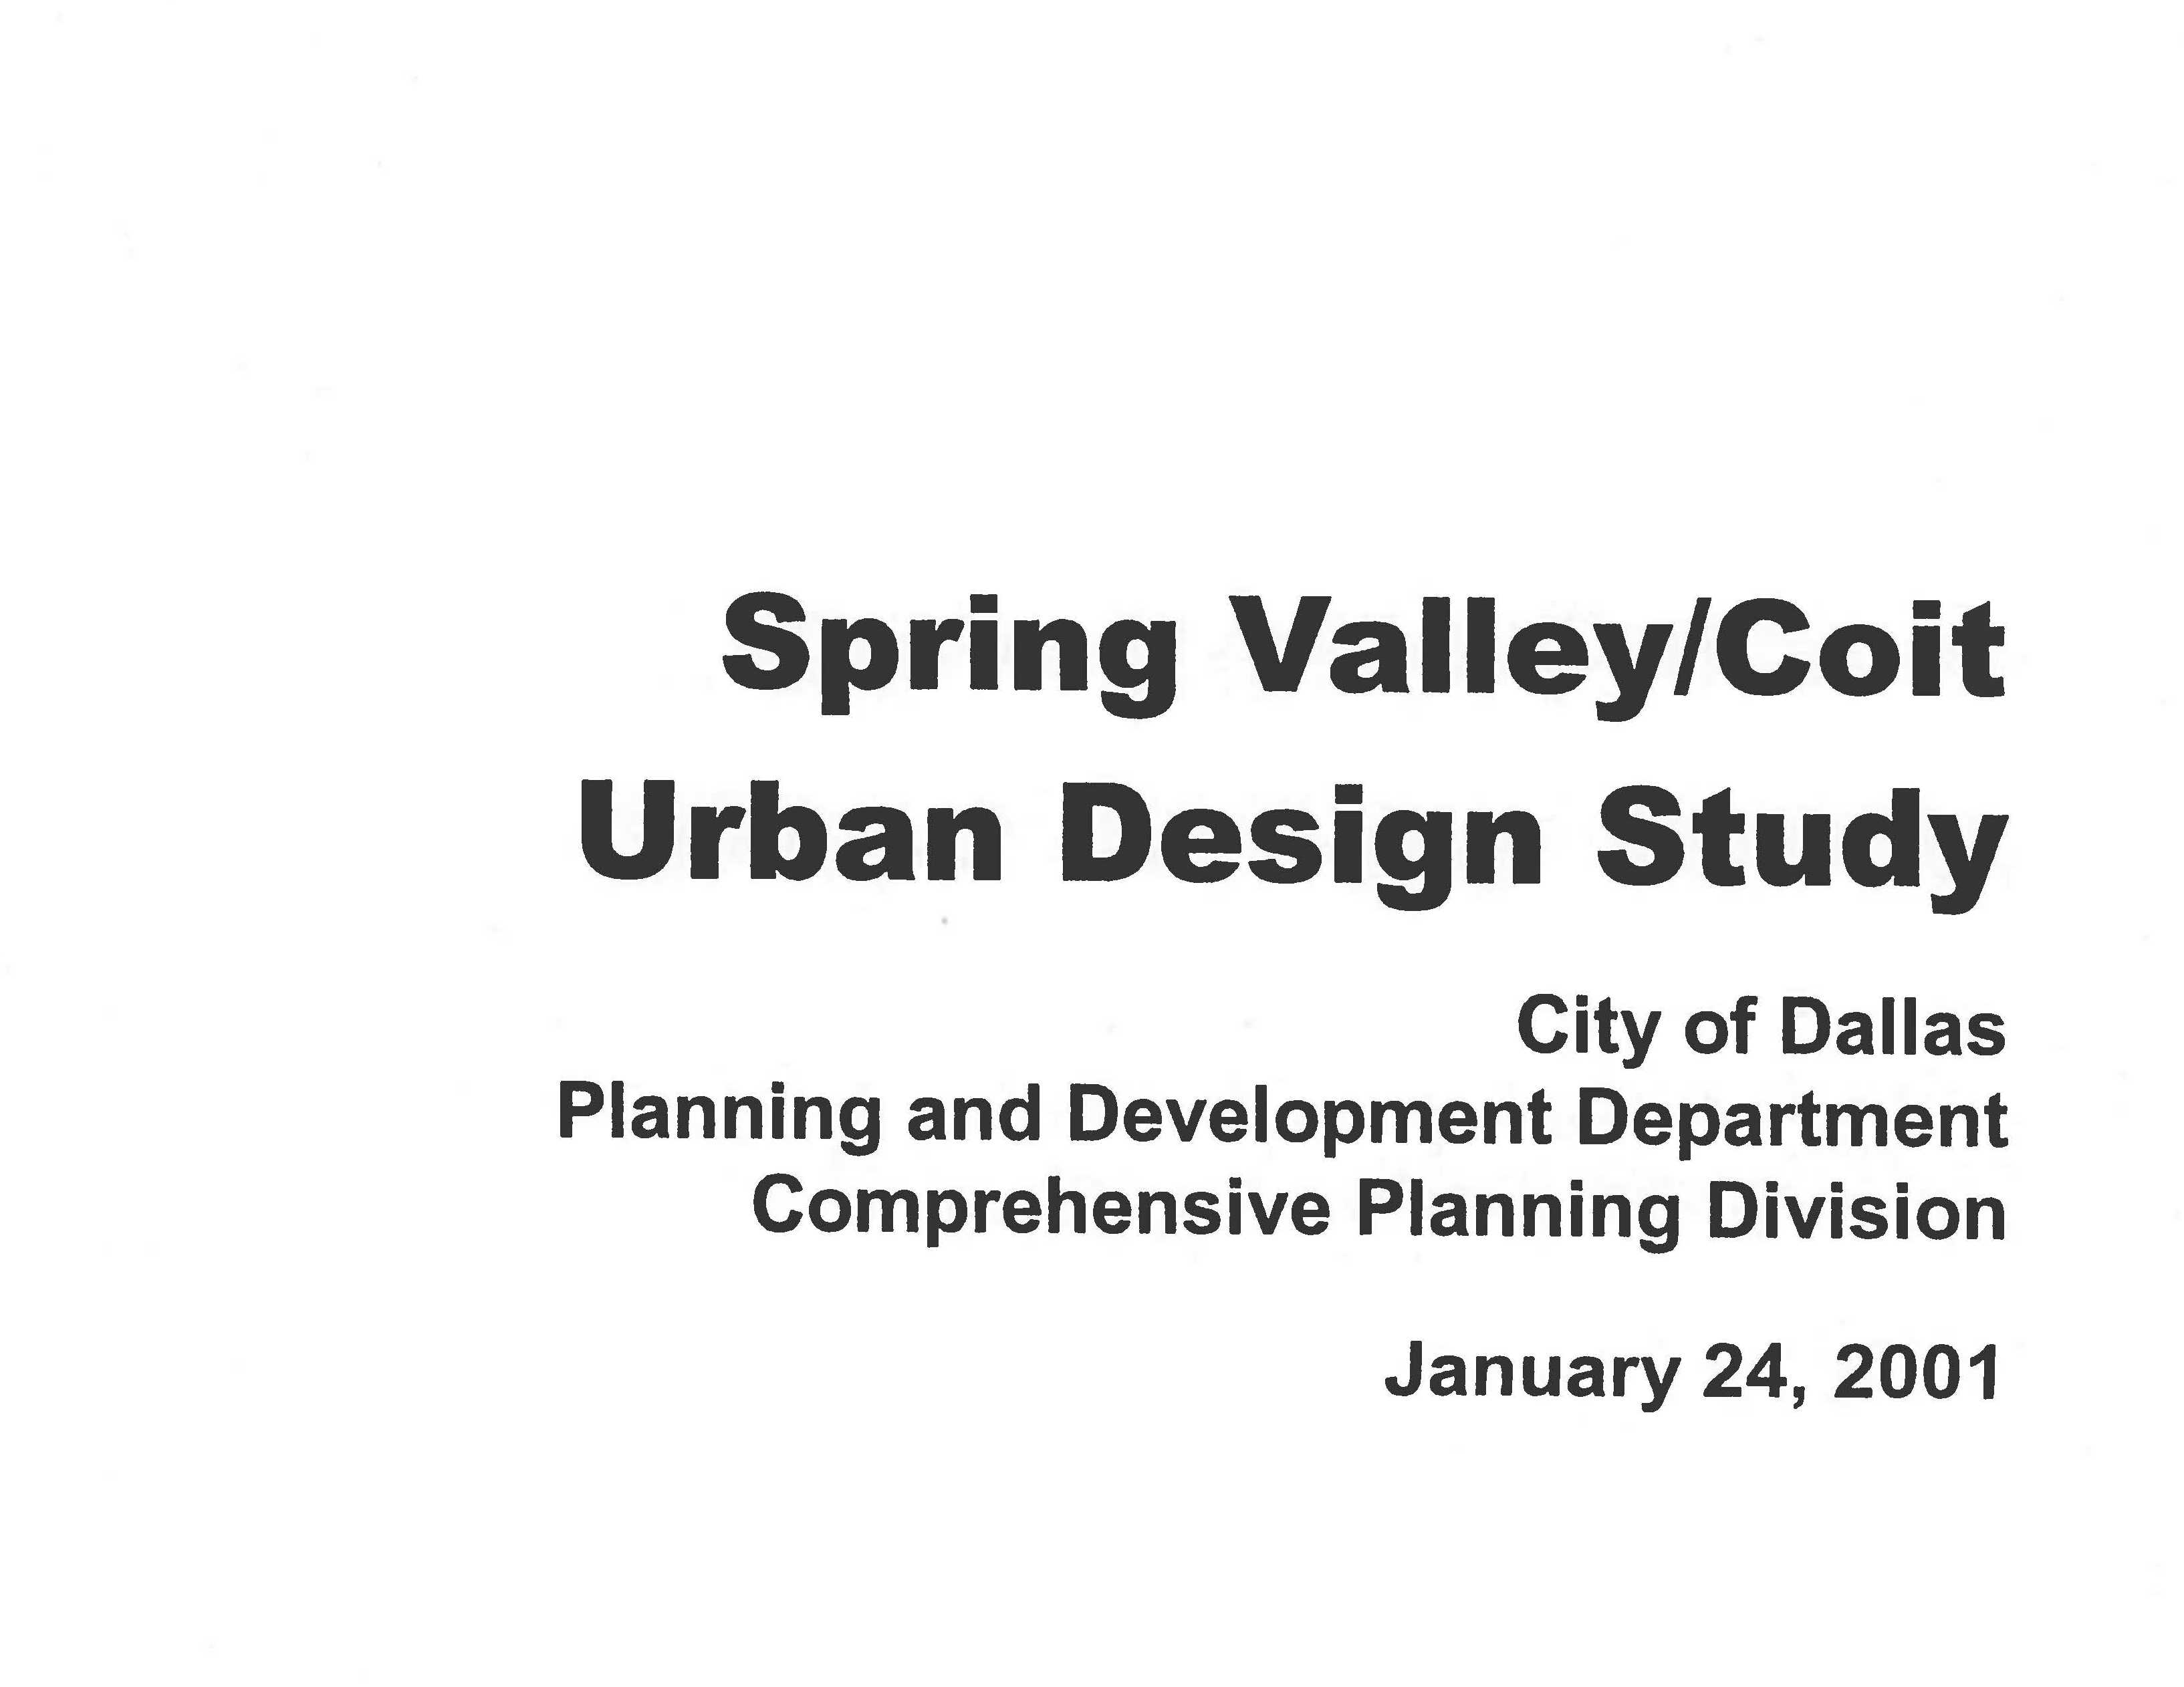 Spring valleycoit urban design study cover.jpg